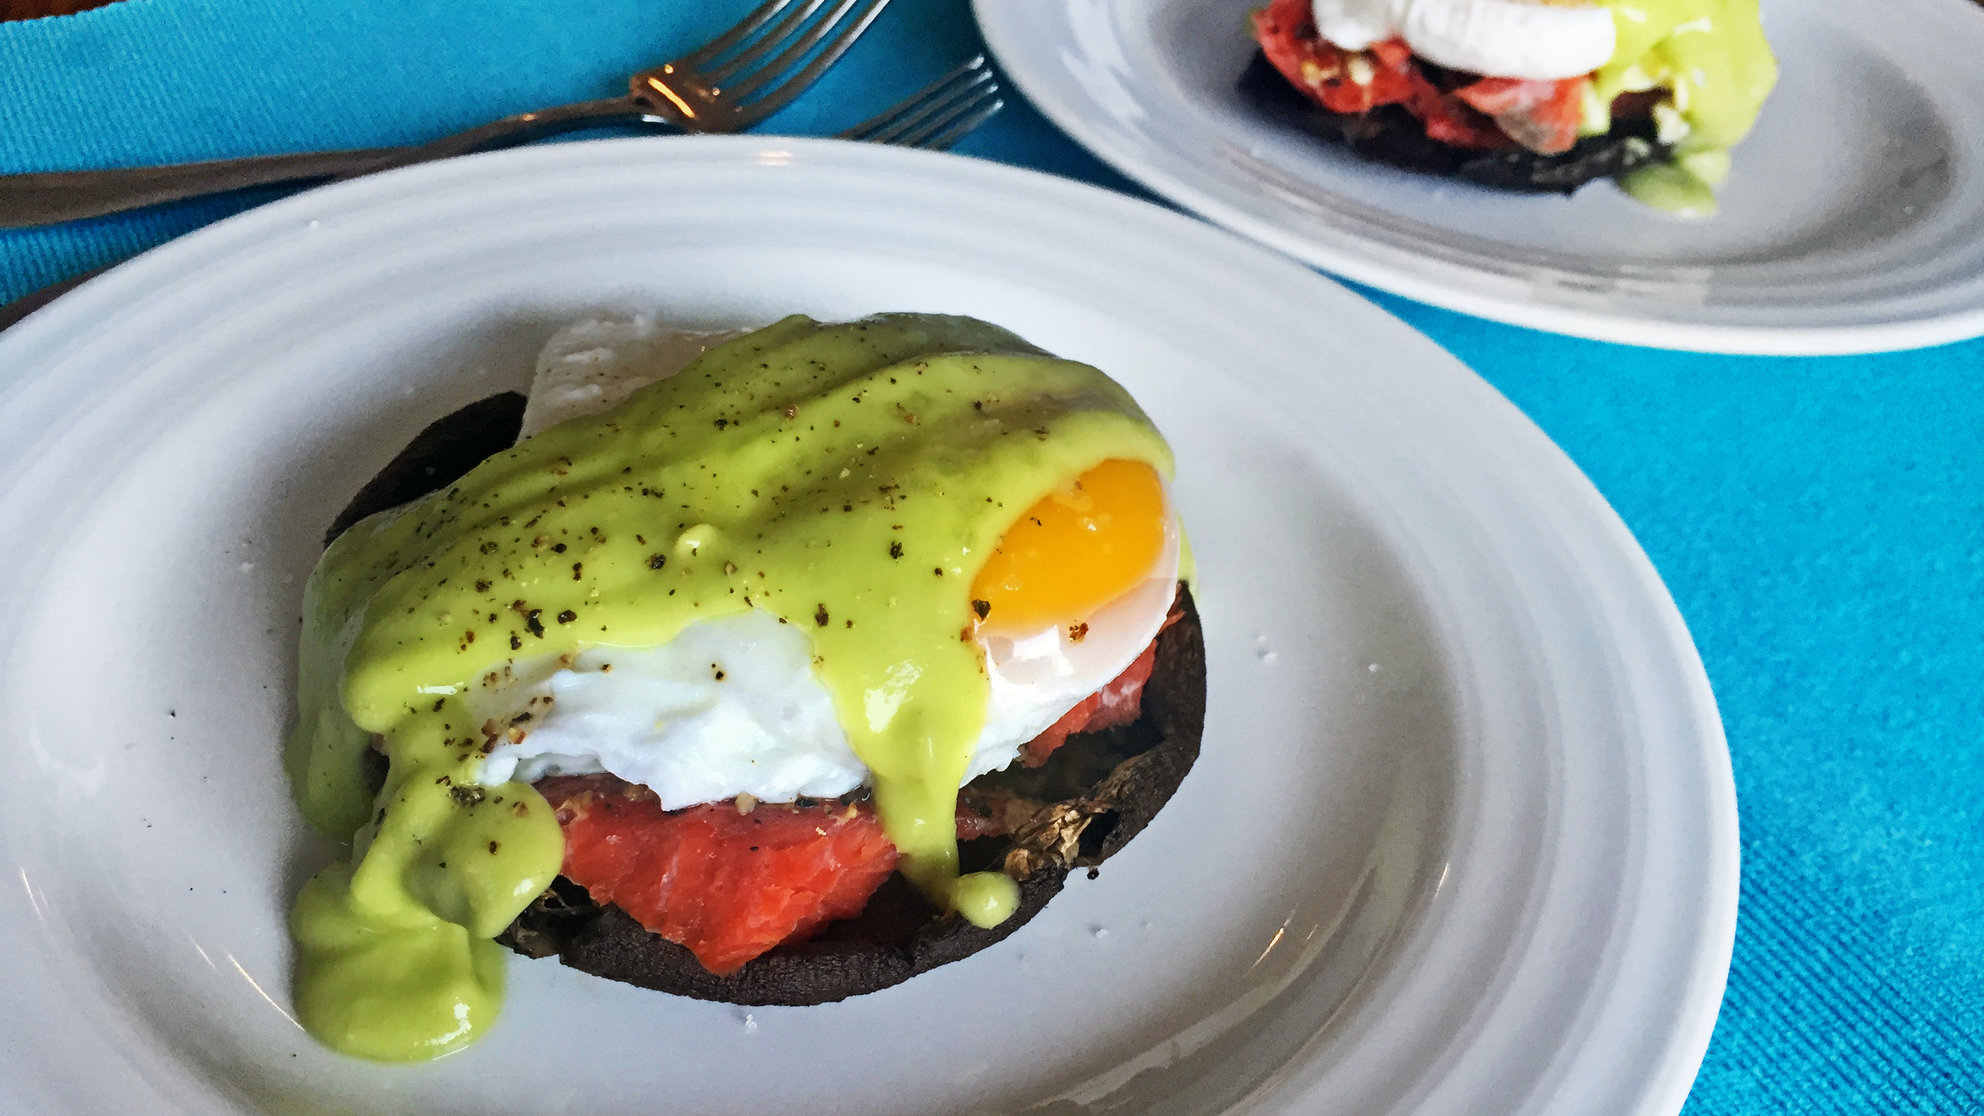 This Healthy Eggs Benedict Recipe Calls for Smoked Salmon and Avocado Sauce